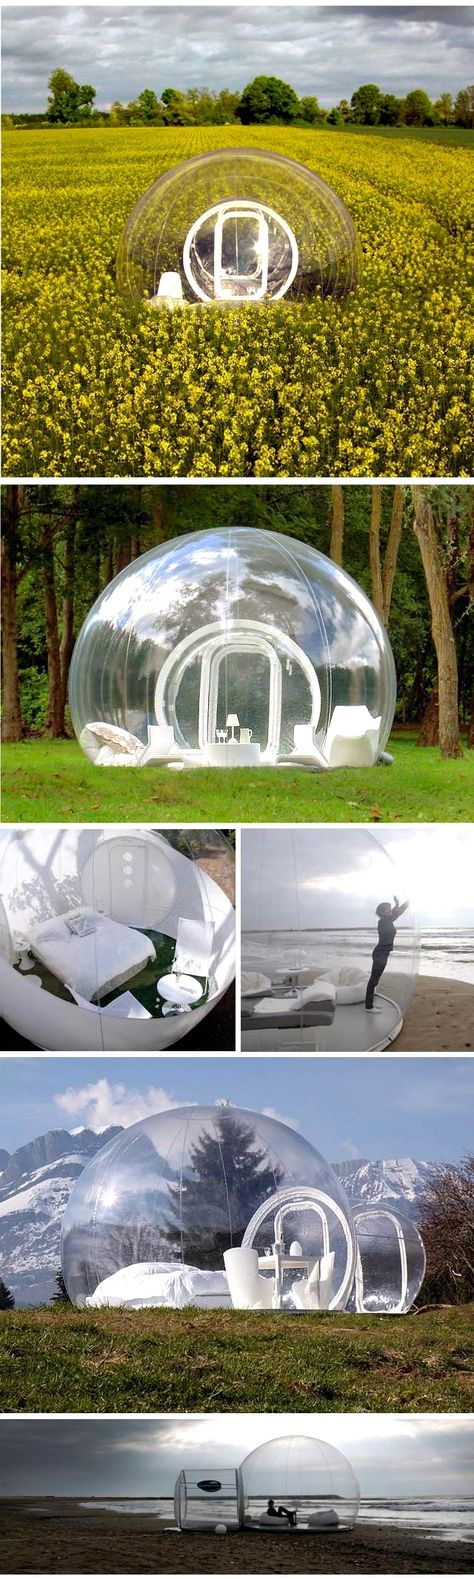 55 best Domes images on Pinterest | Architecture, Cob houses and Tiny houses